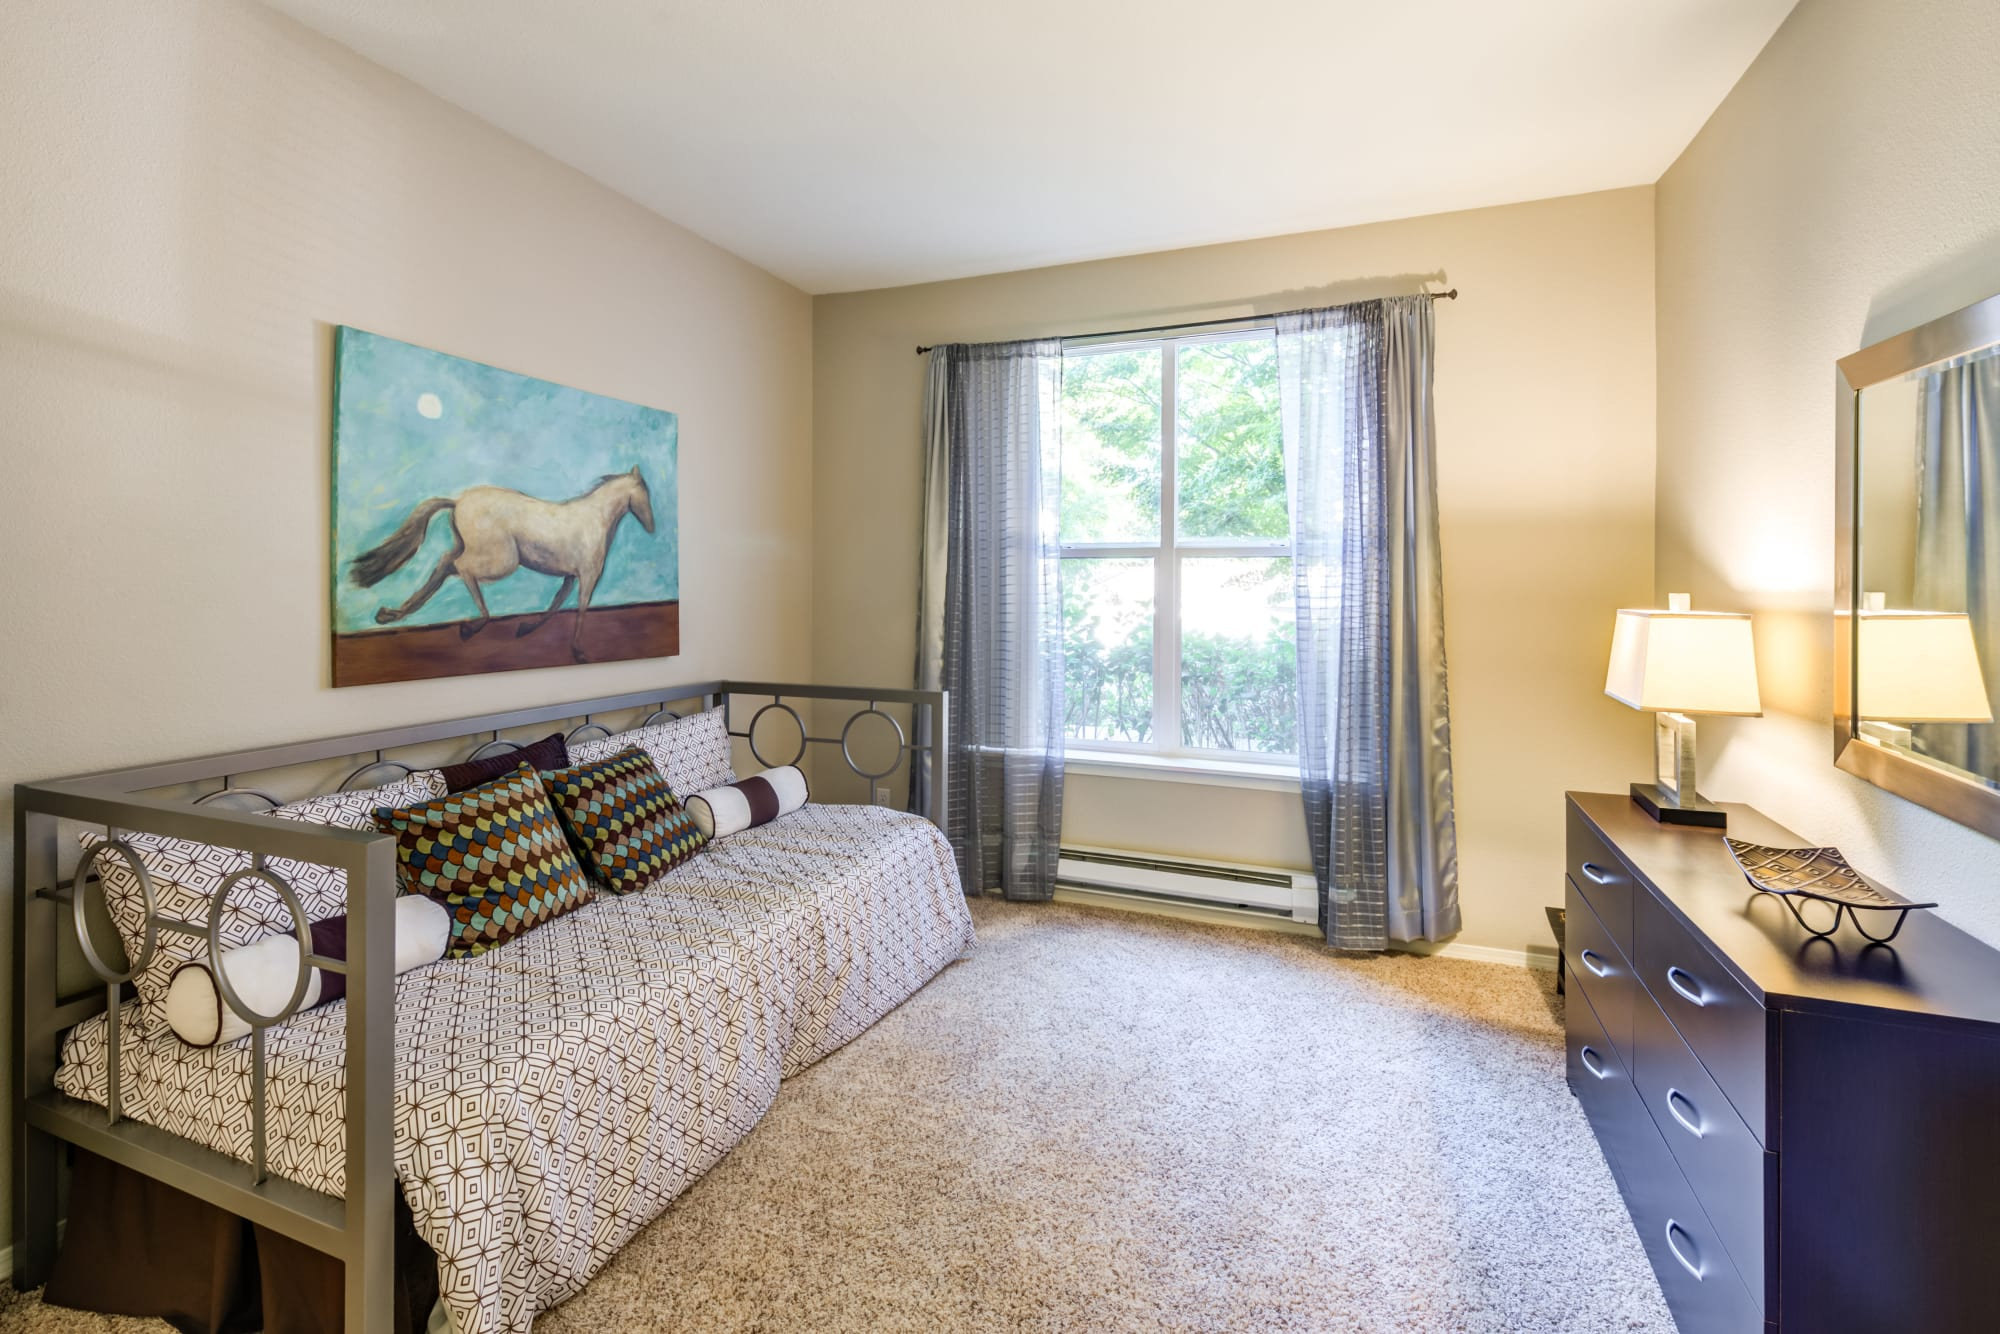 Guest bedroom at HighGrove Apartments in Everett, WA